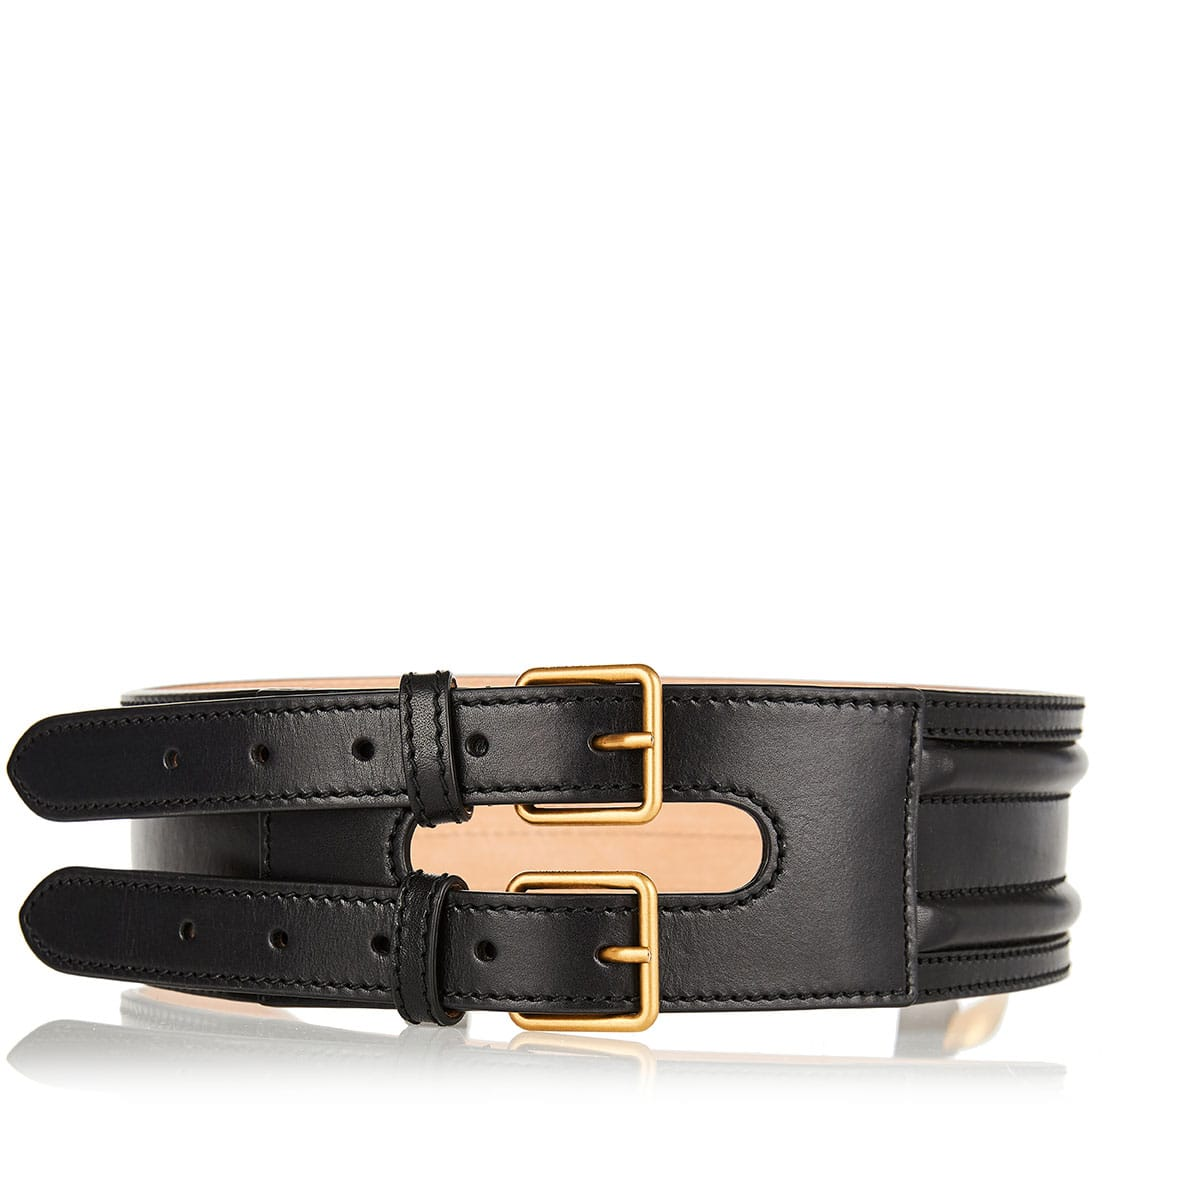 Double-strap wide leather belt